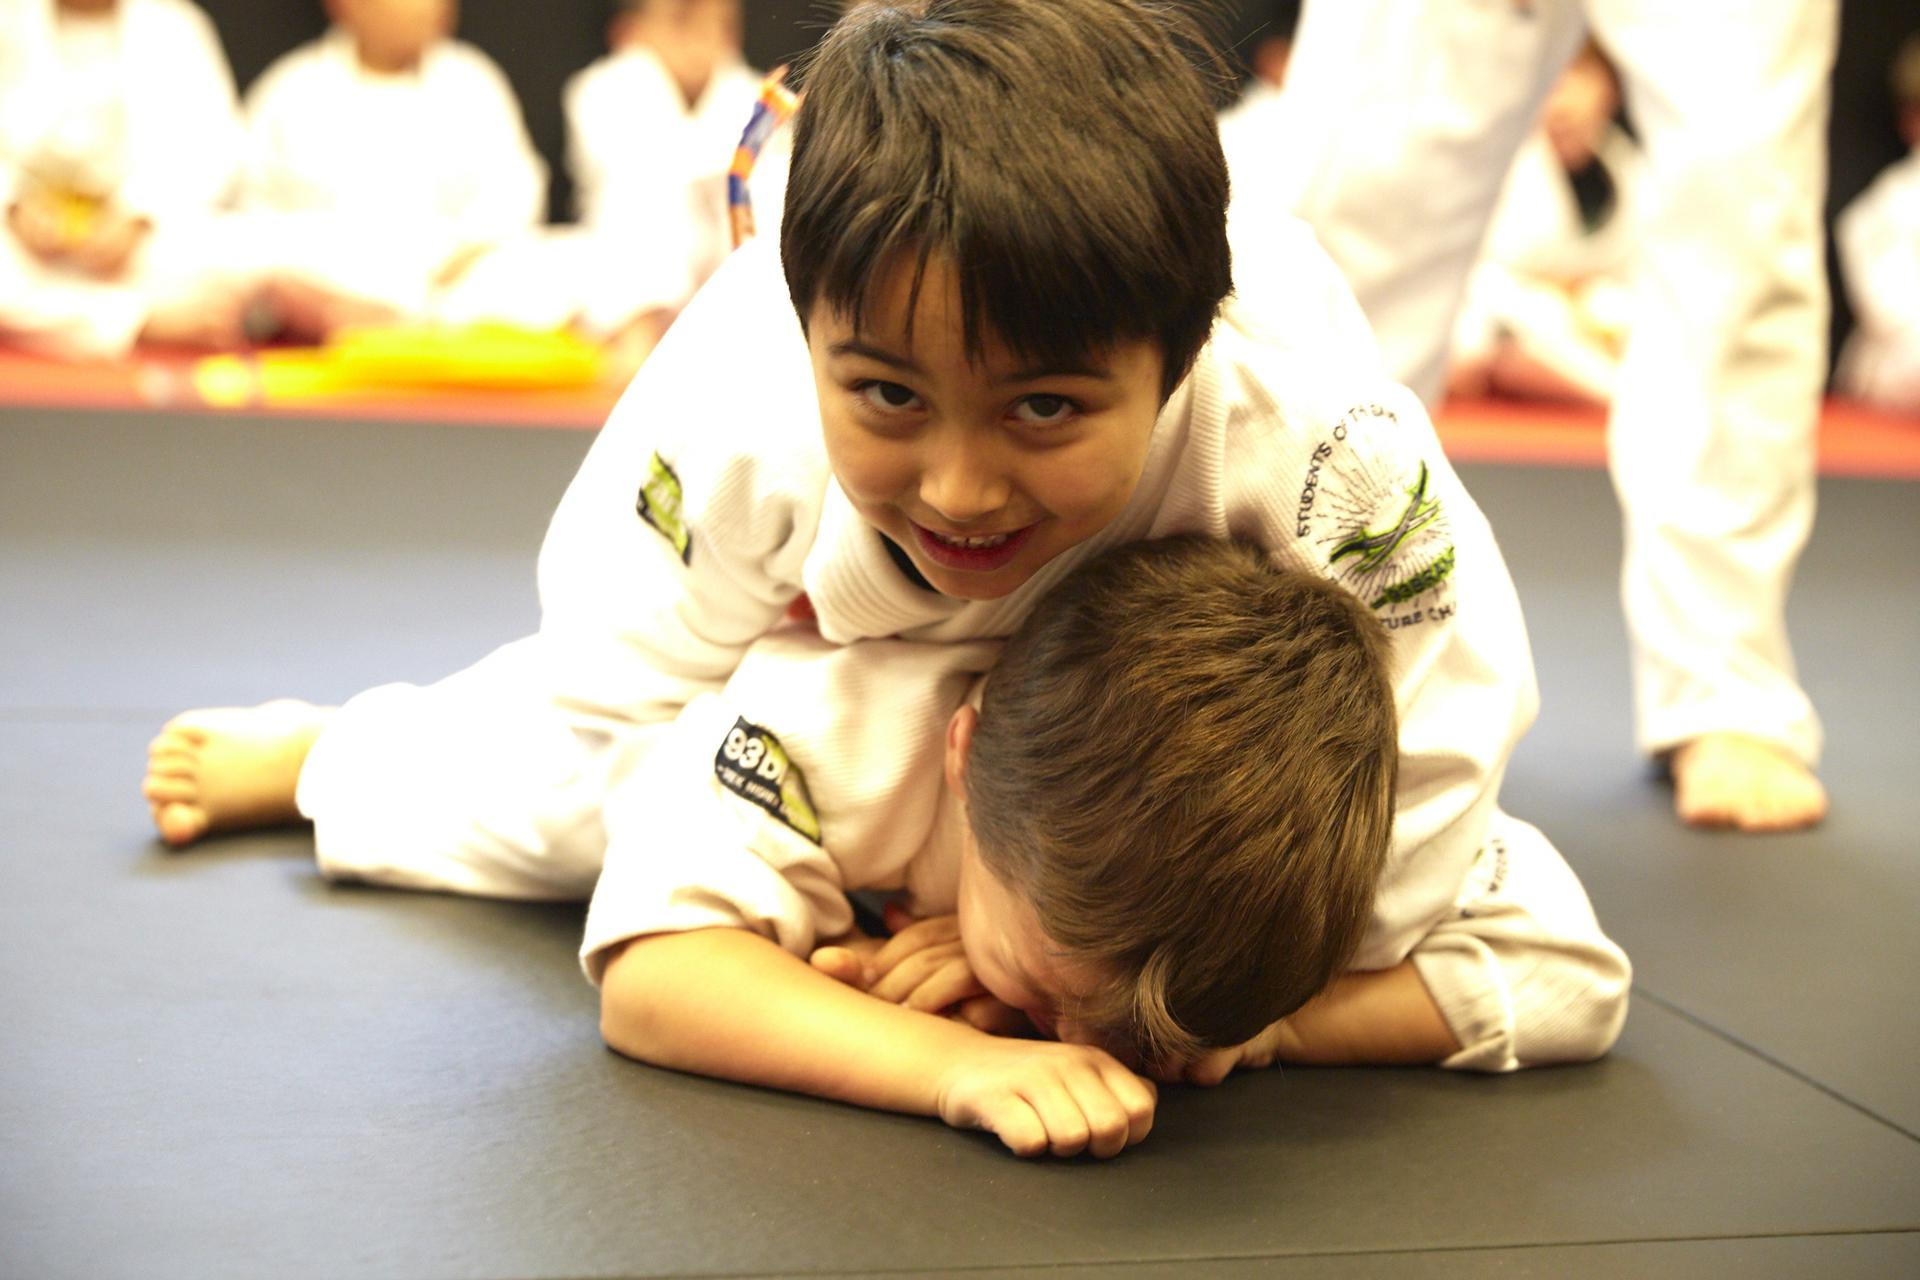 a boy smiling and feeling very confident with his performance in a brazilian jiu jitsu match at training grounds